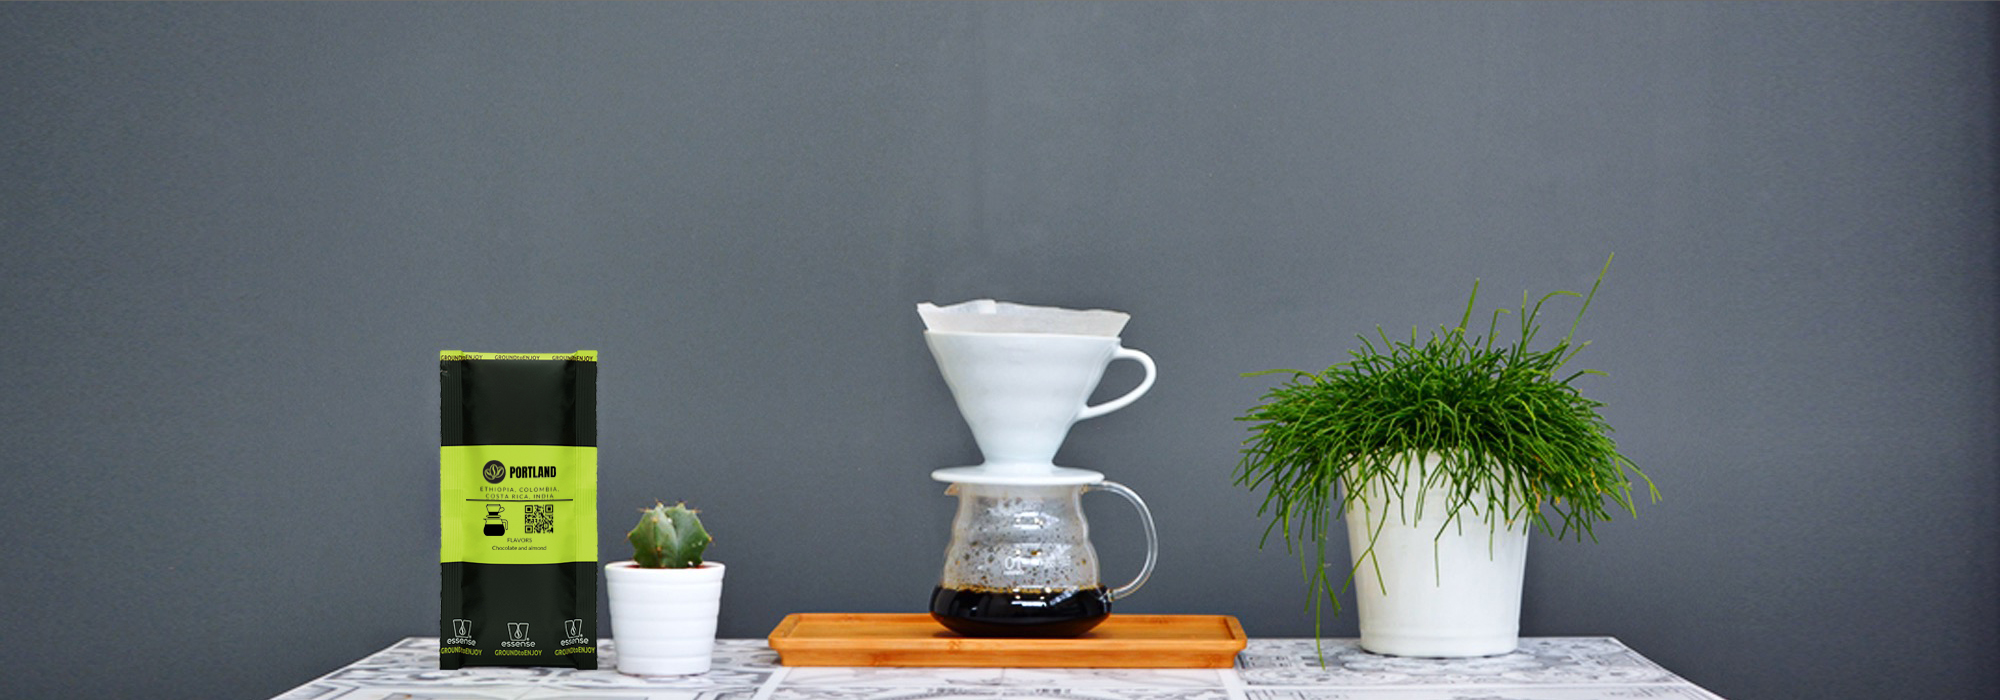 tutorial coffee brewing v60